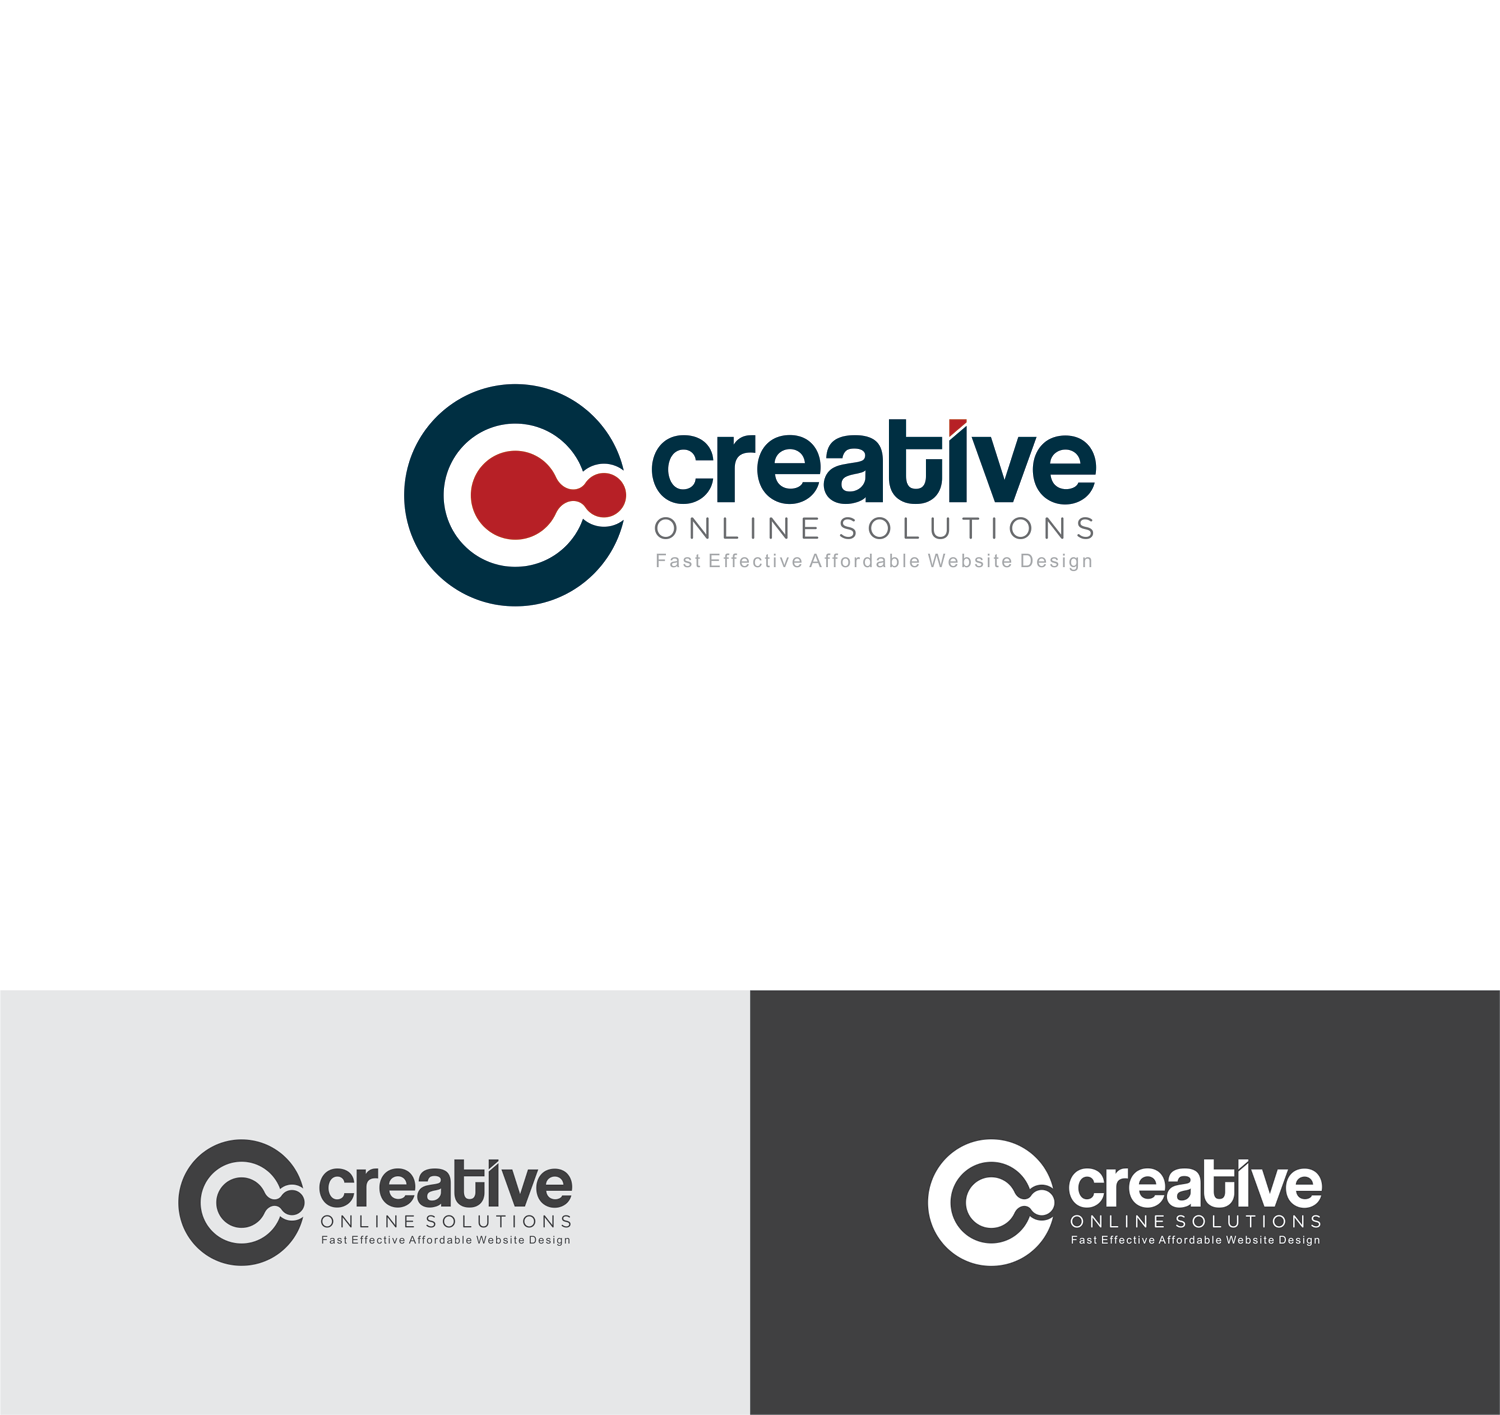 New logo wanted for Creative Online Solutions